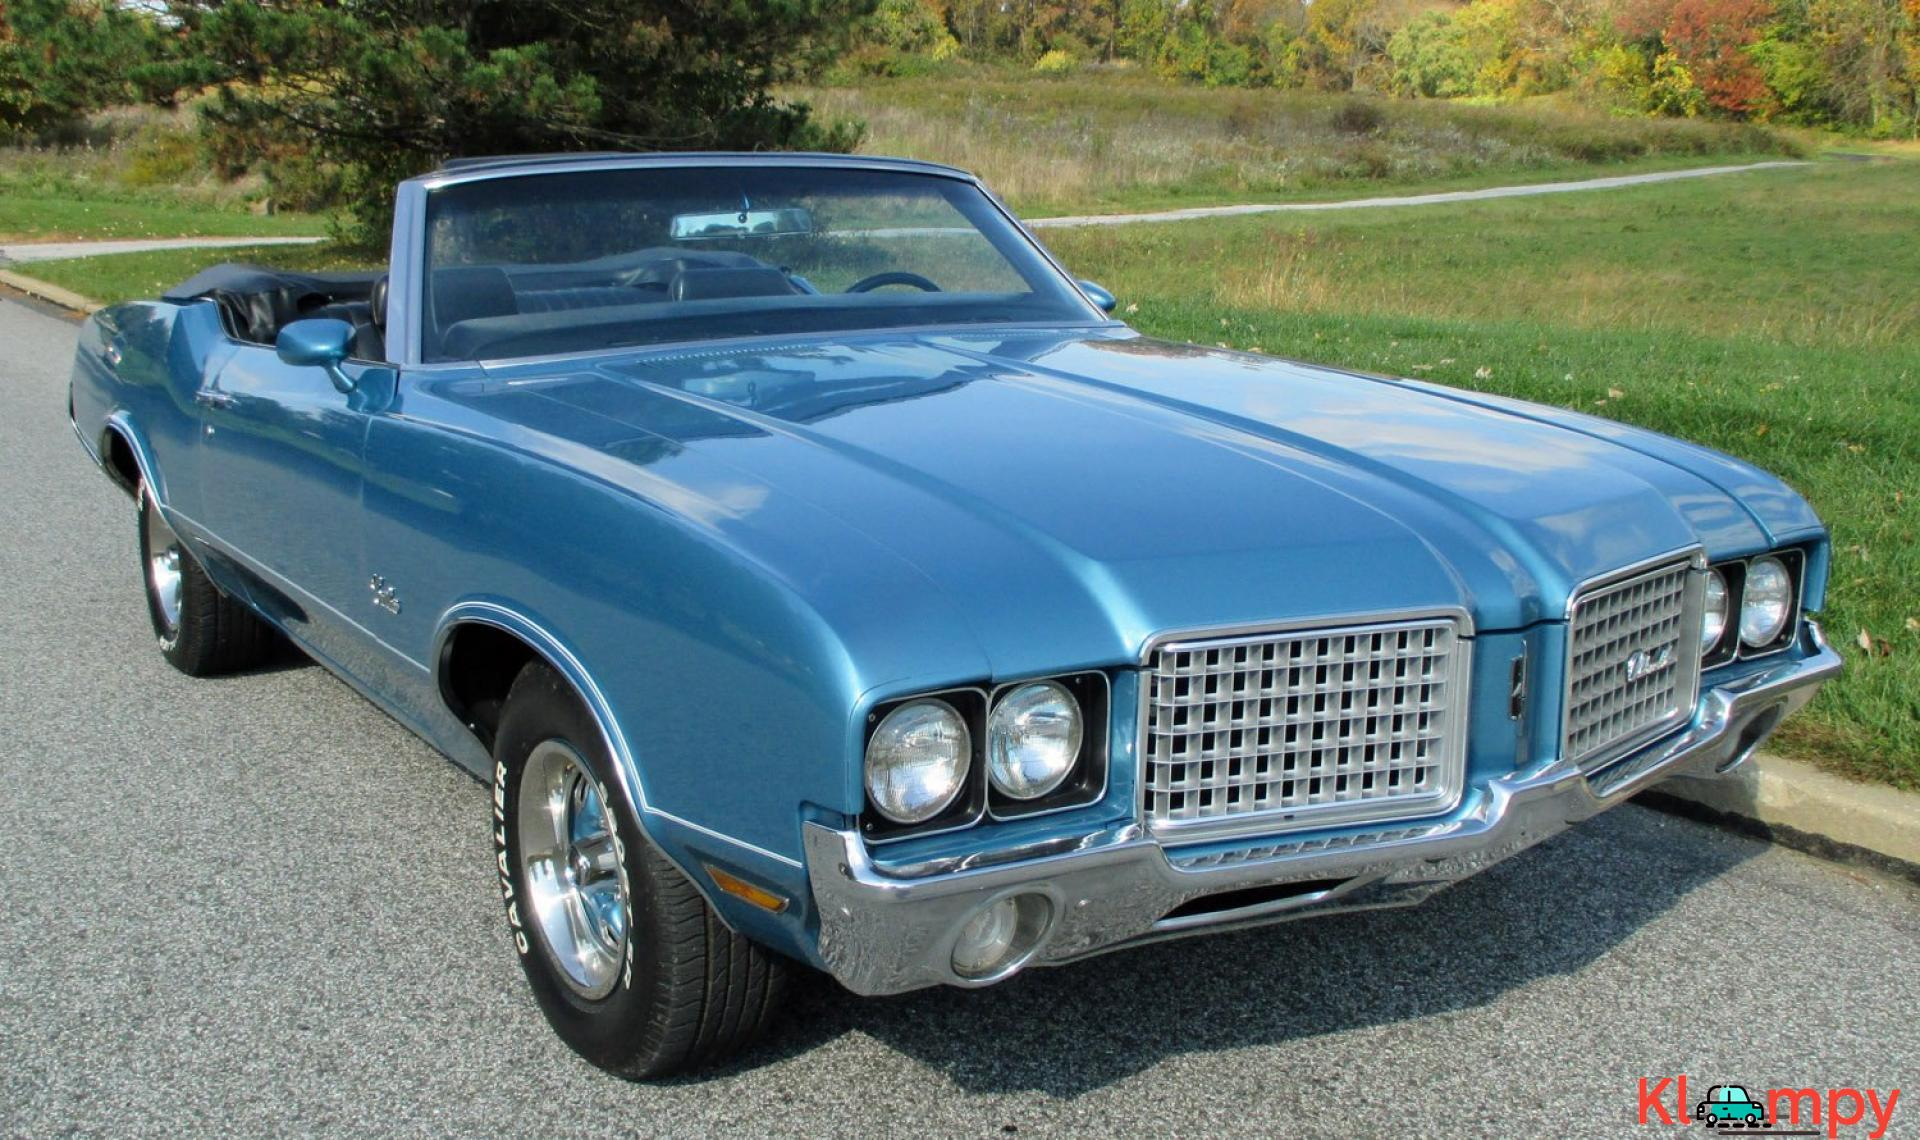 1972 Oldsmobile Cutlass Supreme 350 Convertible V8 - 1/19